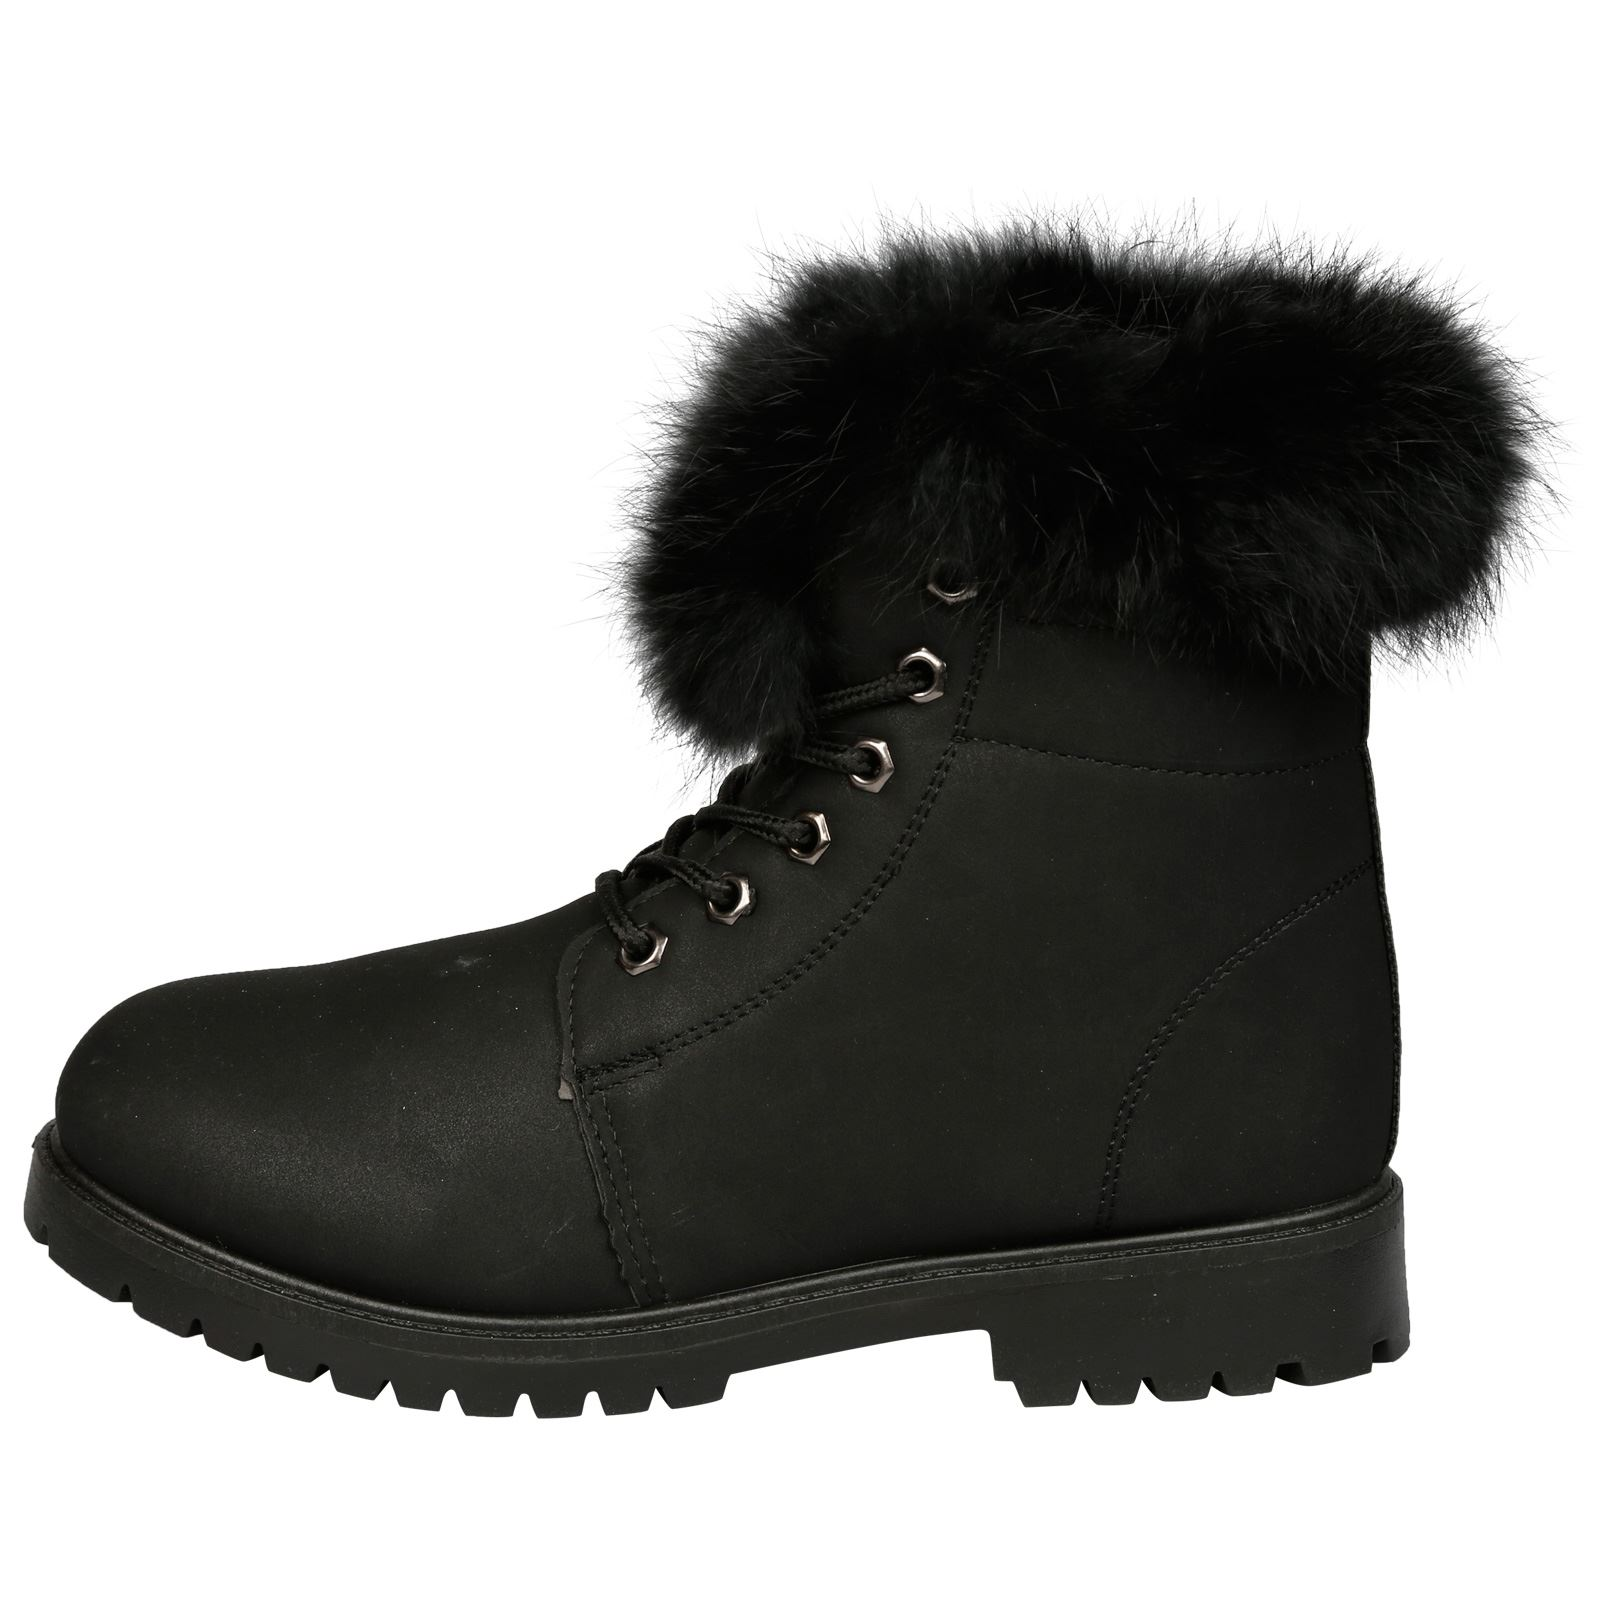 NEW-WOMEN-SHOES-LADIES-FUR-LINED-LOW-HEEL-LACE-UP-ANKLE-BOOTS-CASUAL-STYLE-SIZE thumbnail 8